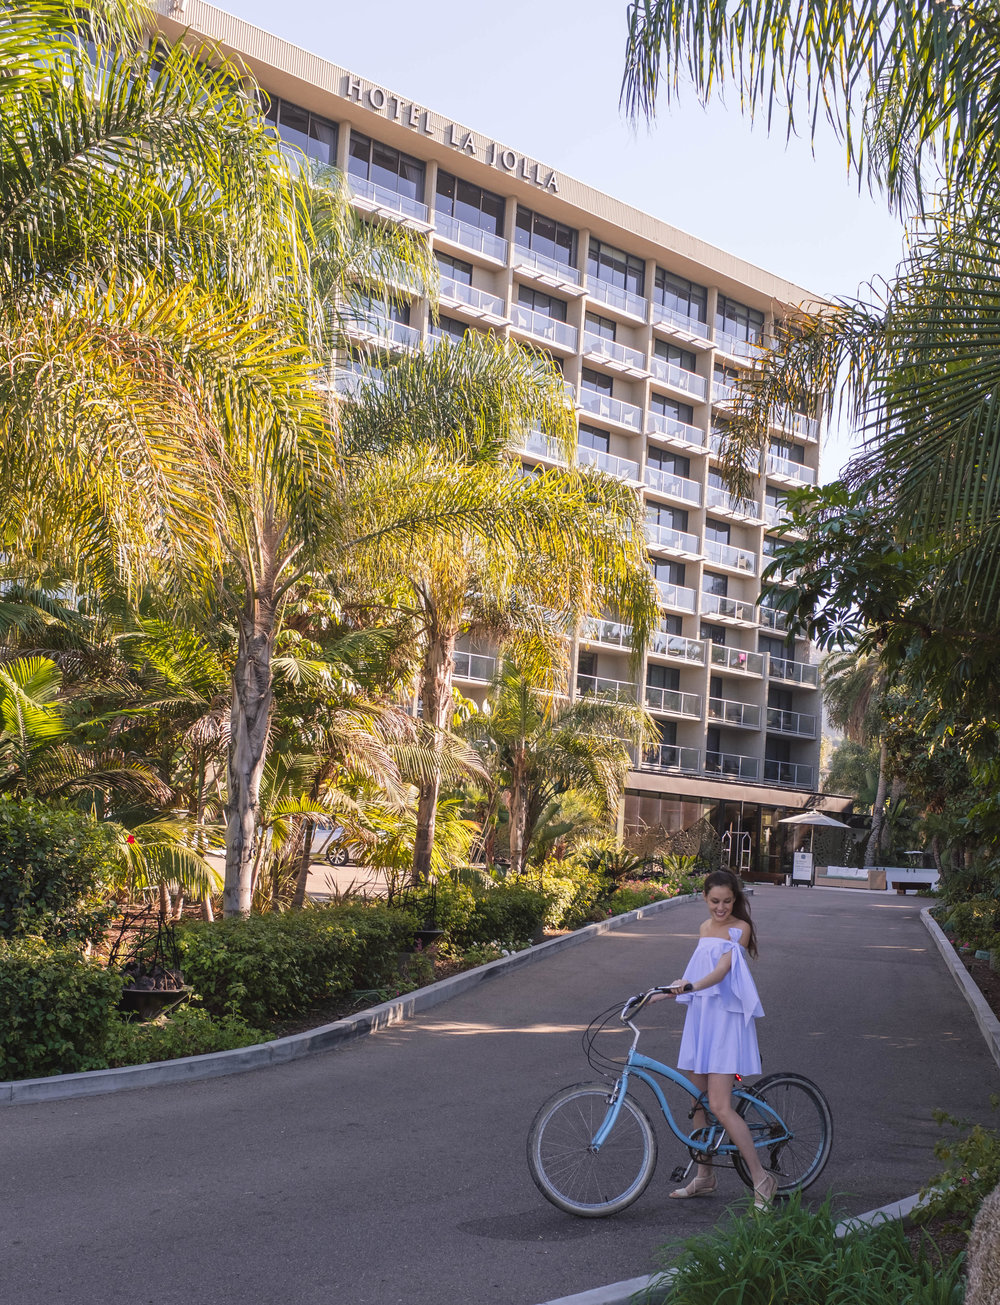 GUESTS OF HOTEL LA JOLLA HAVE ACCESS TO BEACH CRUISERS TO RIDE AROUND TOWN